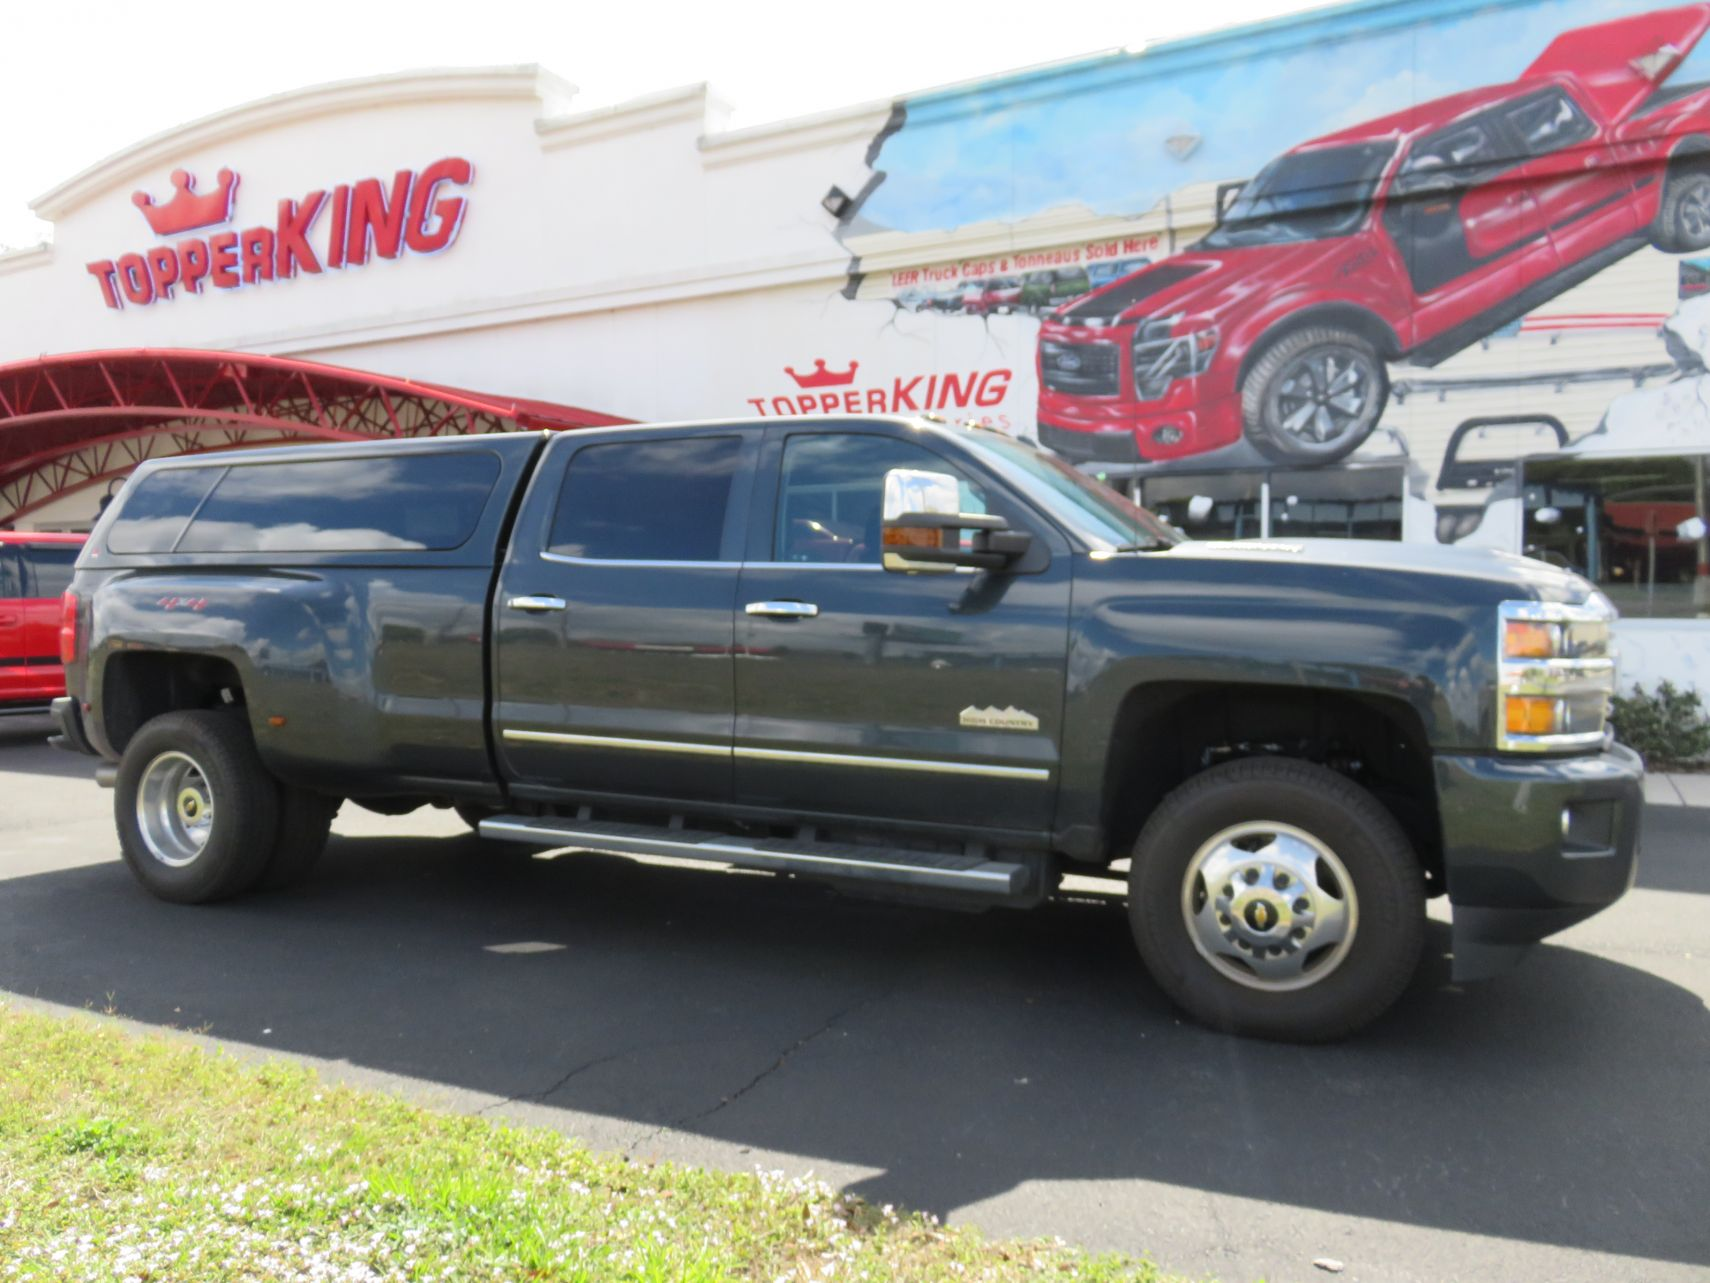 2018 Green Chevy Silverado LEER 100XL, Hitch, Tint, Nerf Bars by TopperKING in Brandon, FL 813-689-2449 or Clearwater, FL 727-530-9066. Call today to start!